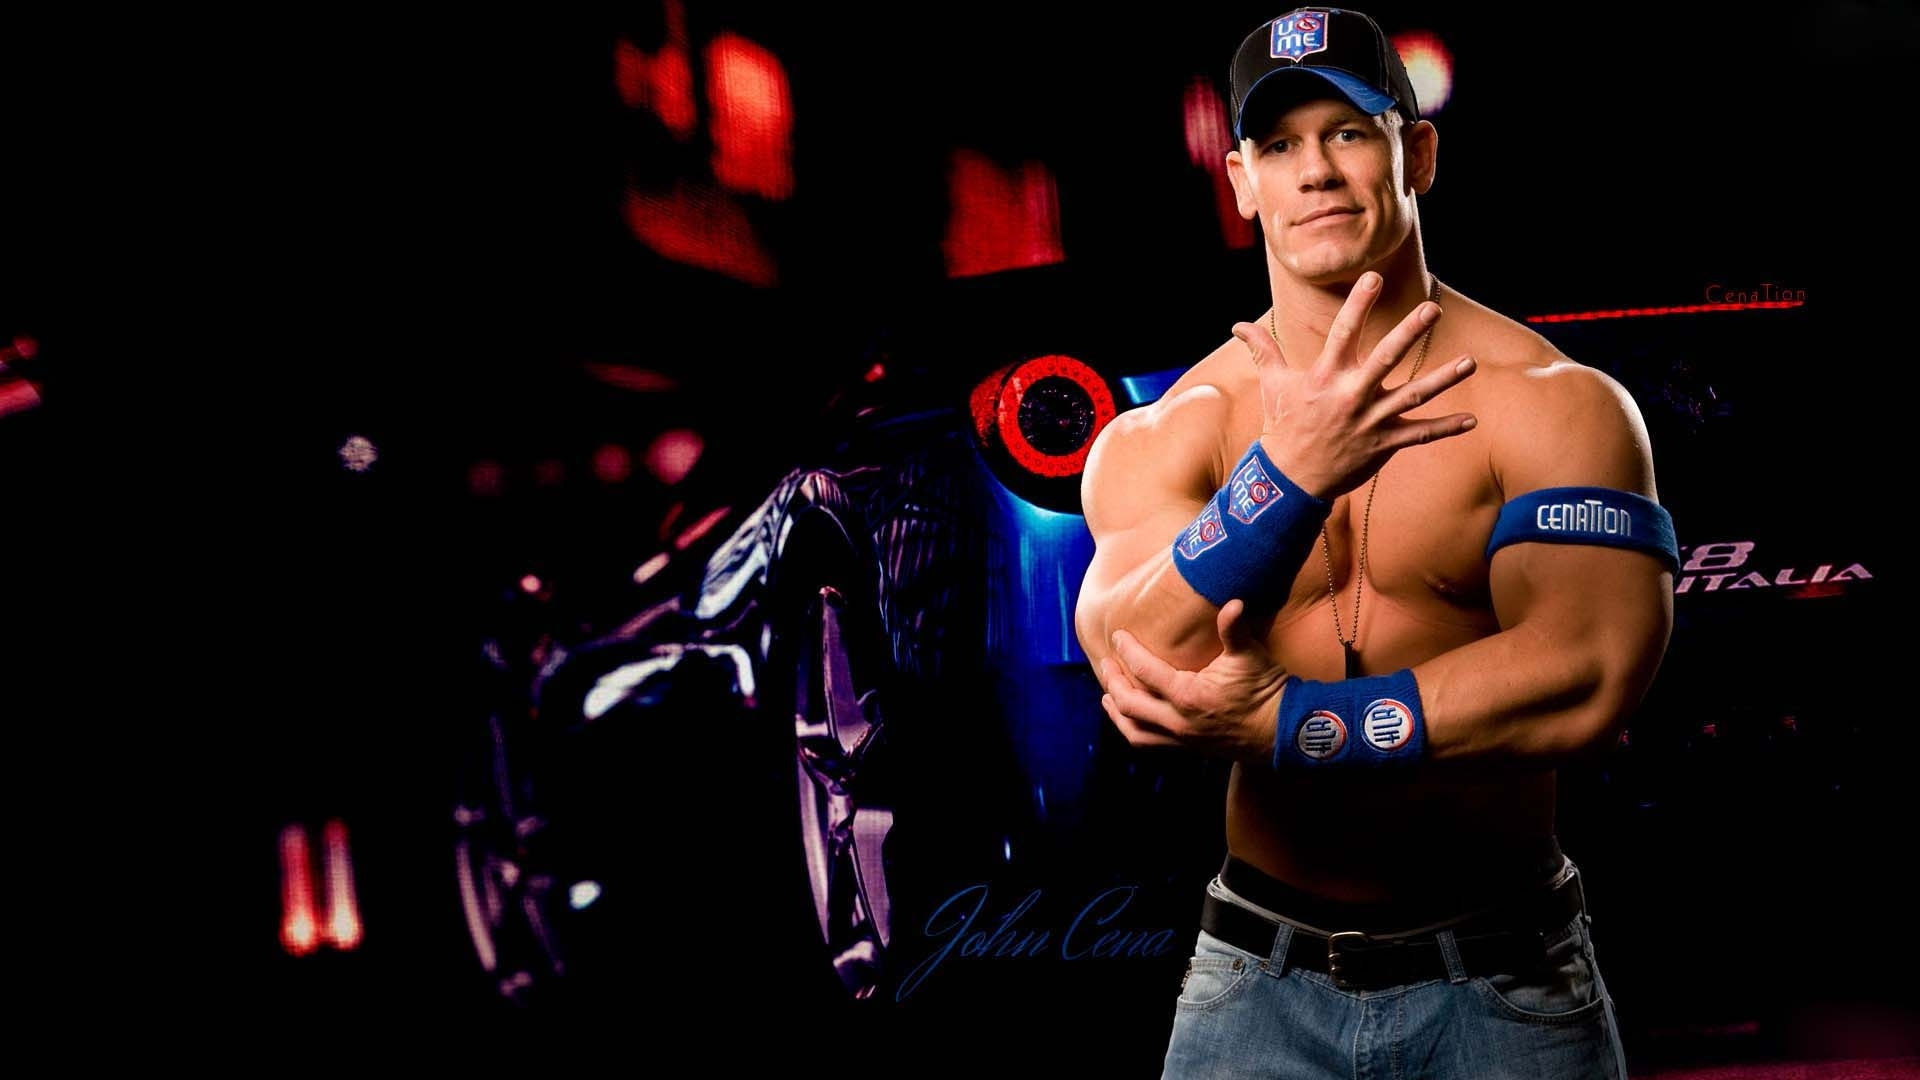 desktop-john-cena-hd-wallpapers - wallpaper.wiki